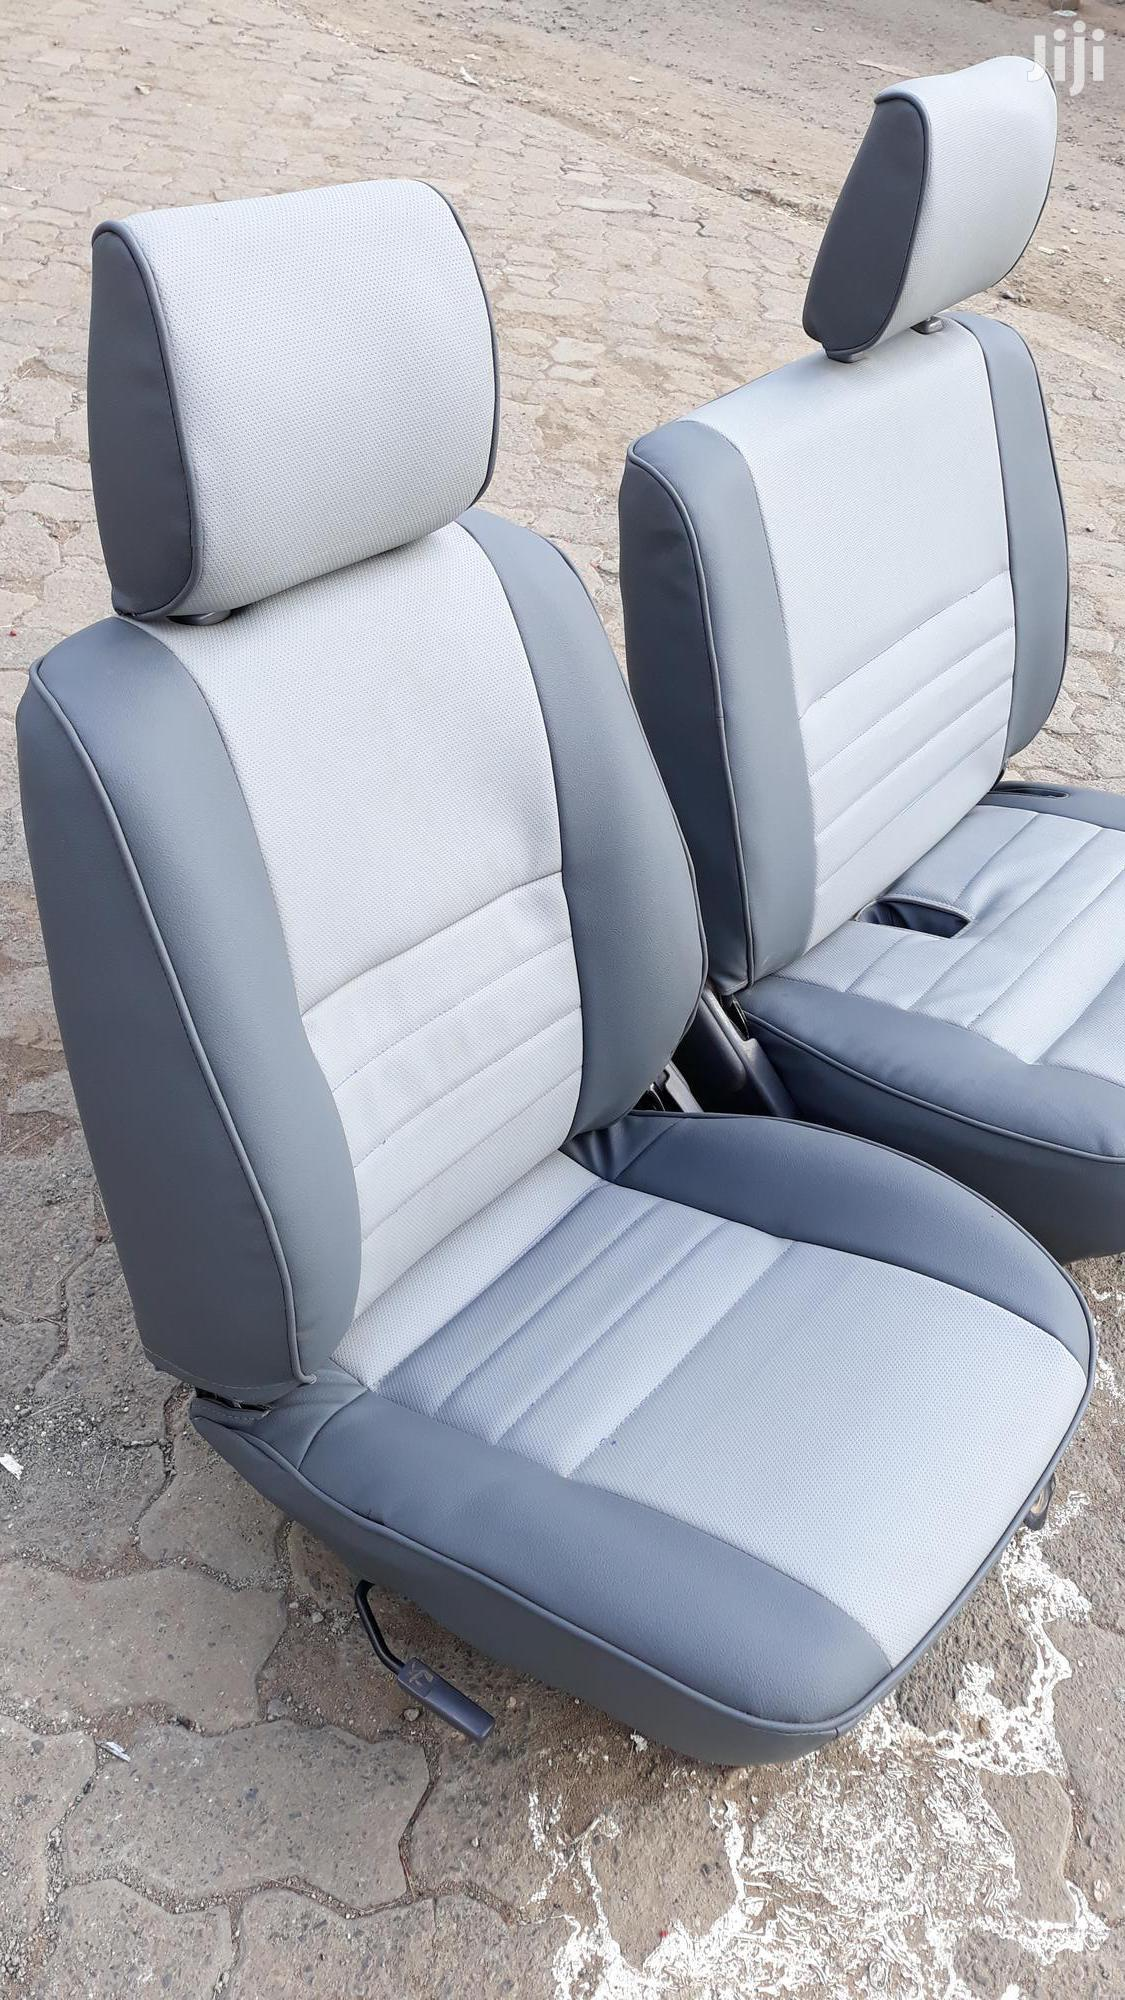 Archive Upholstery Repairs For Old Seats In Nairobi Central Vehicle Parts Accessories Boss Customz Jiji Co Ke